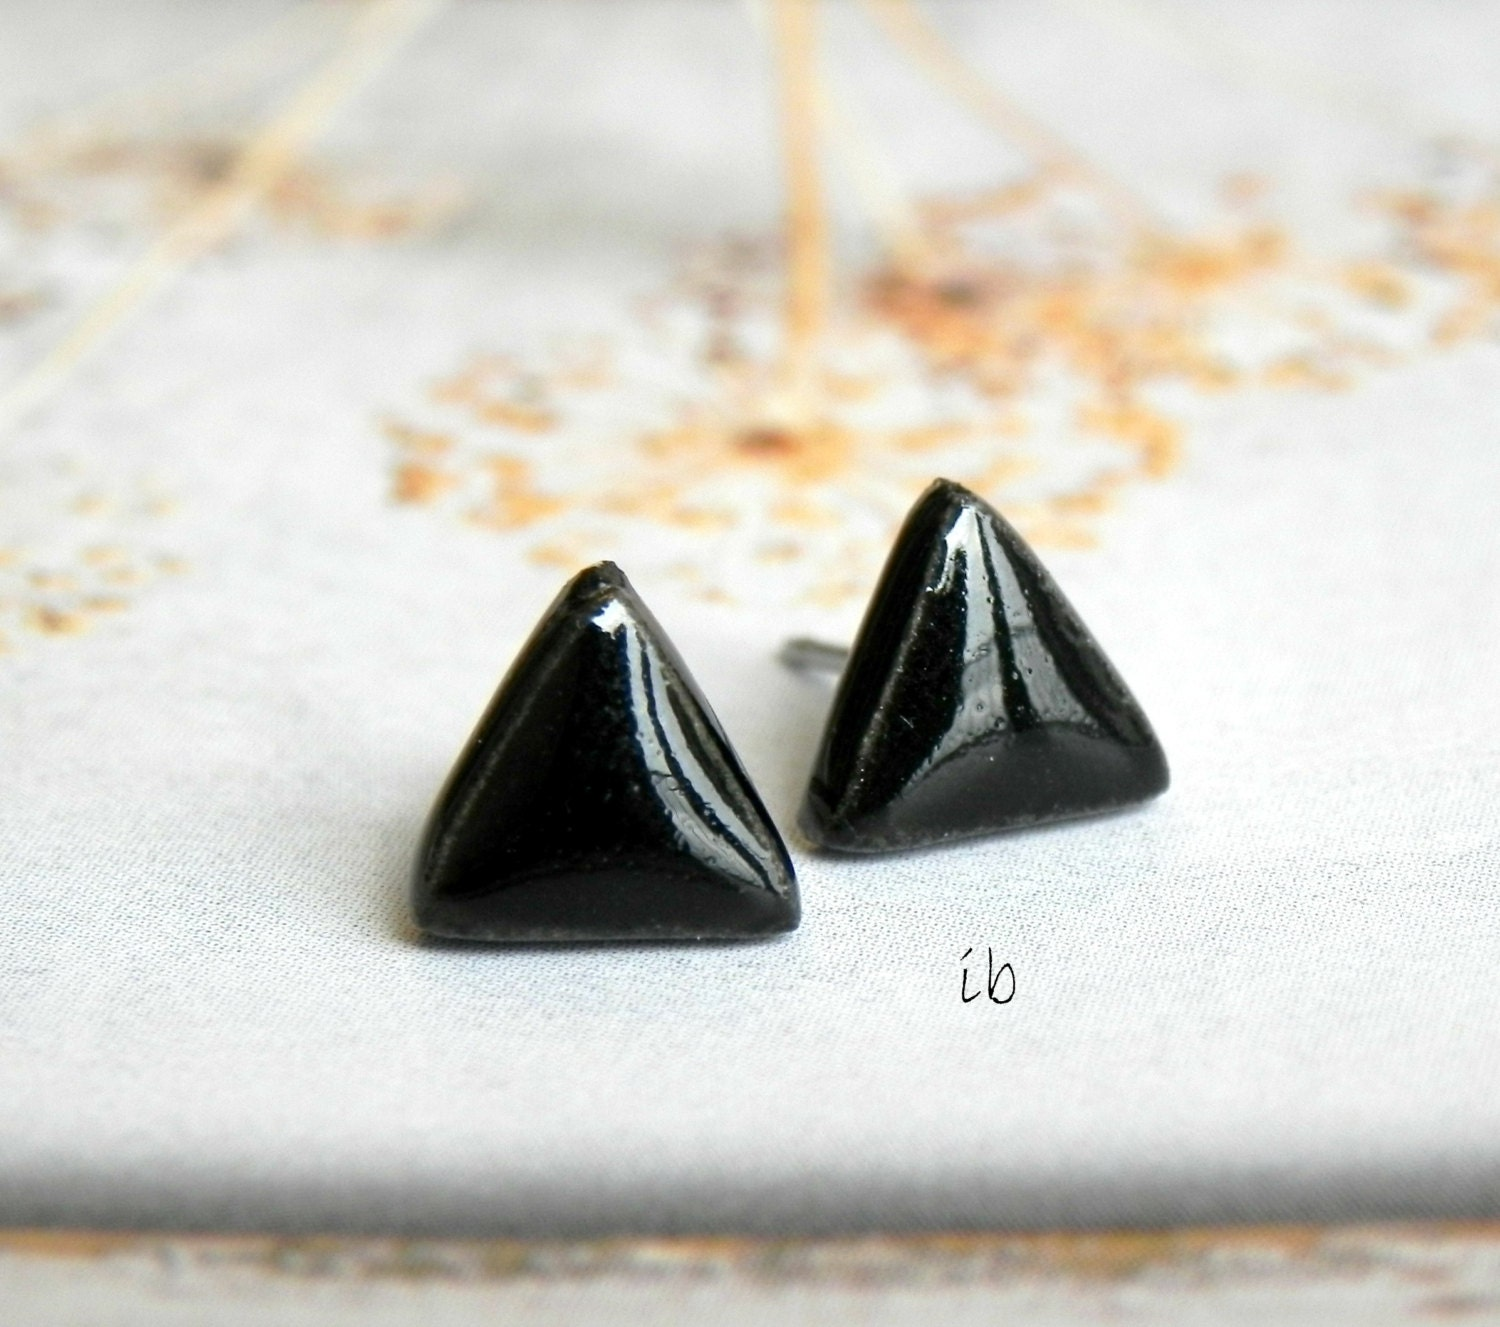 Black Porcelain Earrings Stud Tiny Ceramic Post Geometric Earrings Hypoallergenic Men Earrings - LemoneRouge